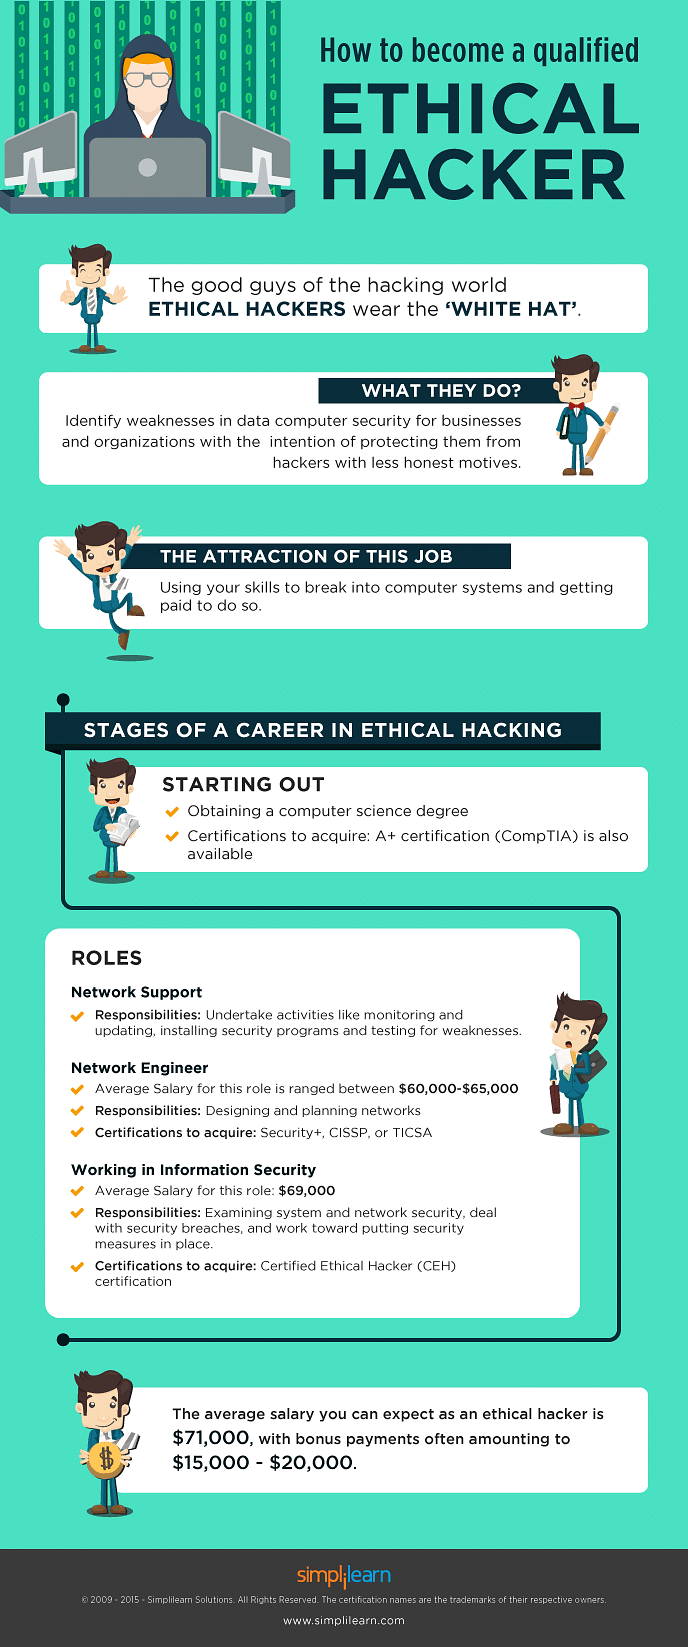 How To Become a Qualified Ethical Hacker